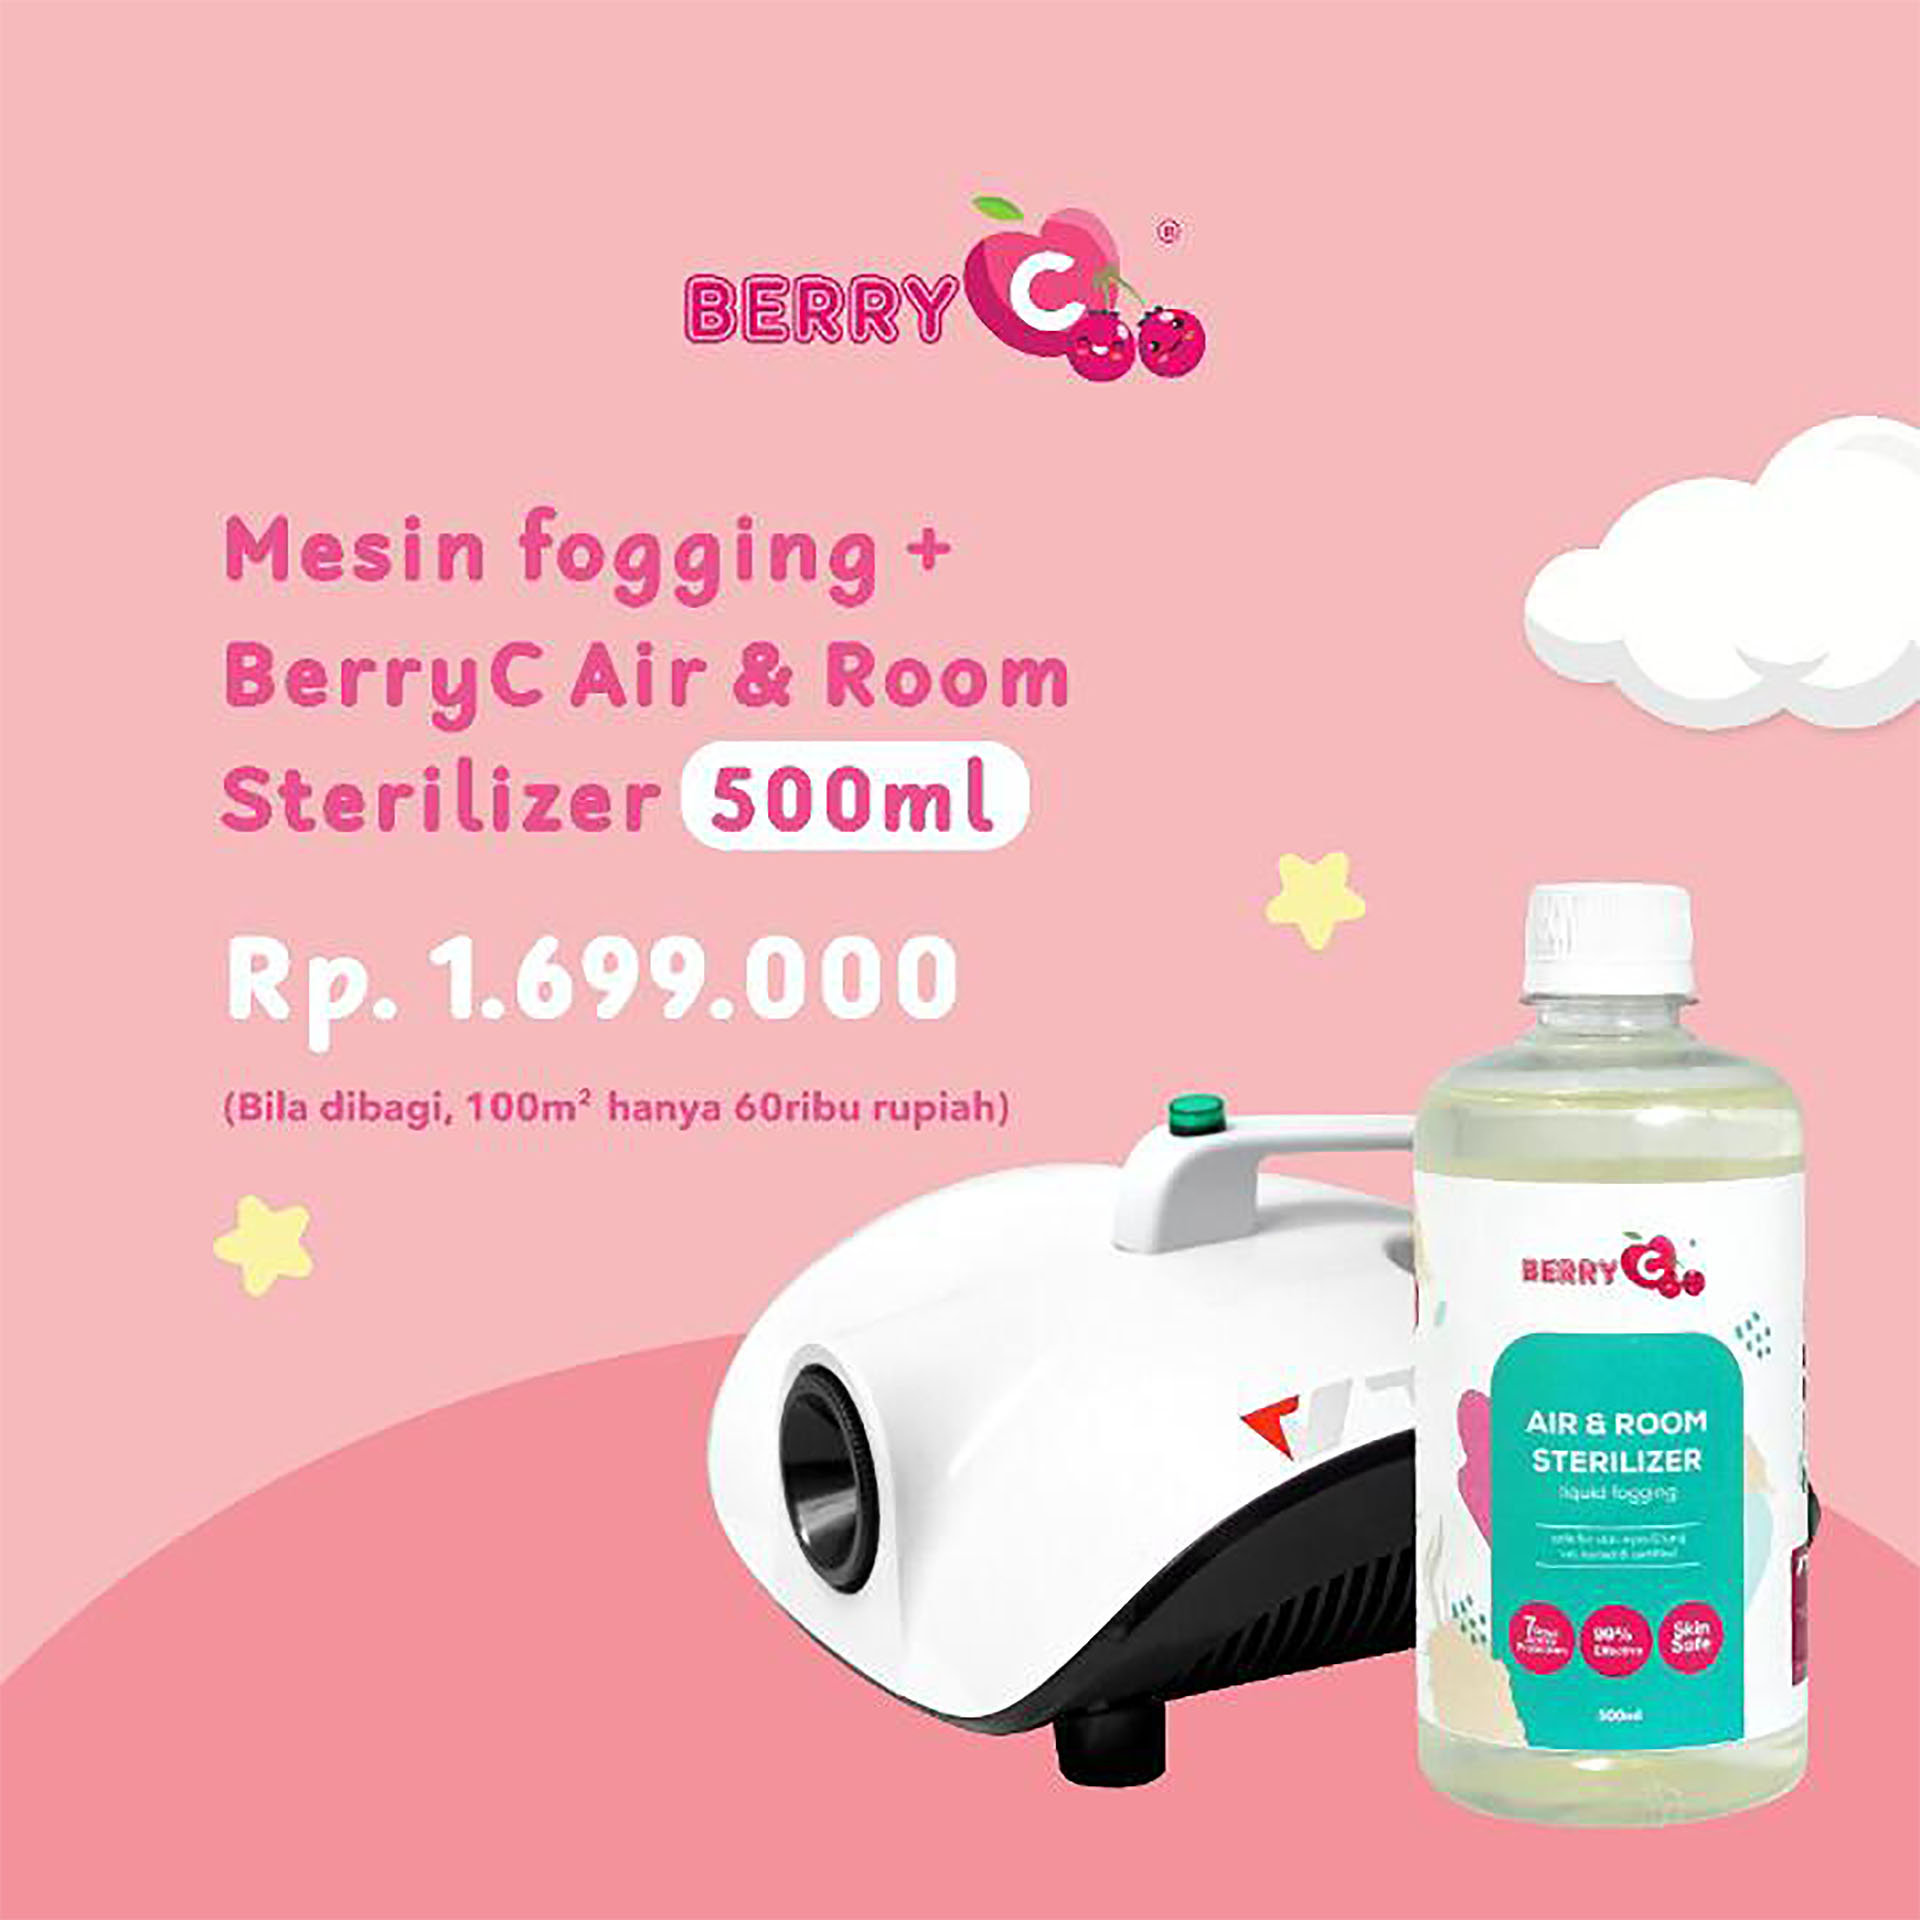 BerryC 500ml Air & Room Liquid Fogging + Machine